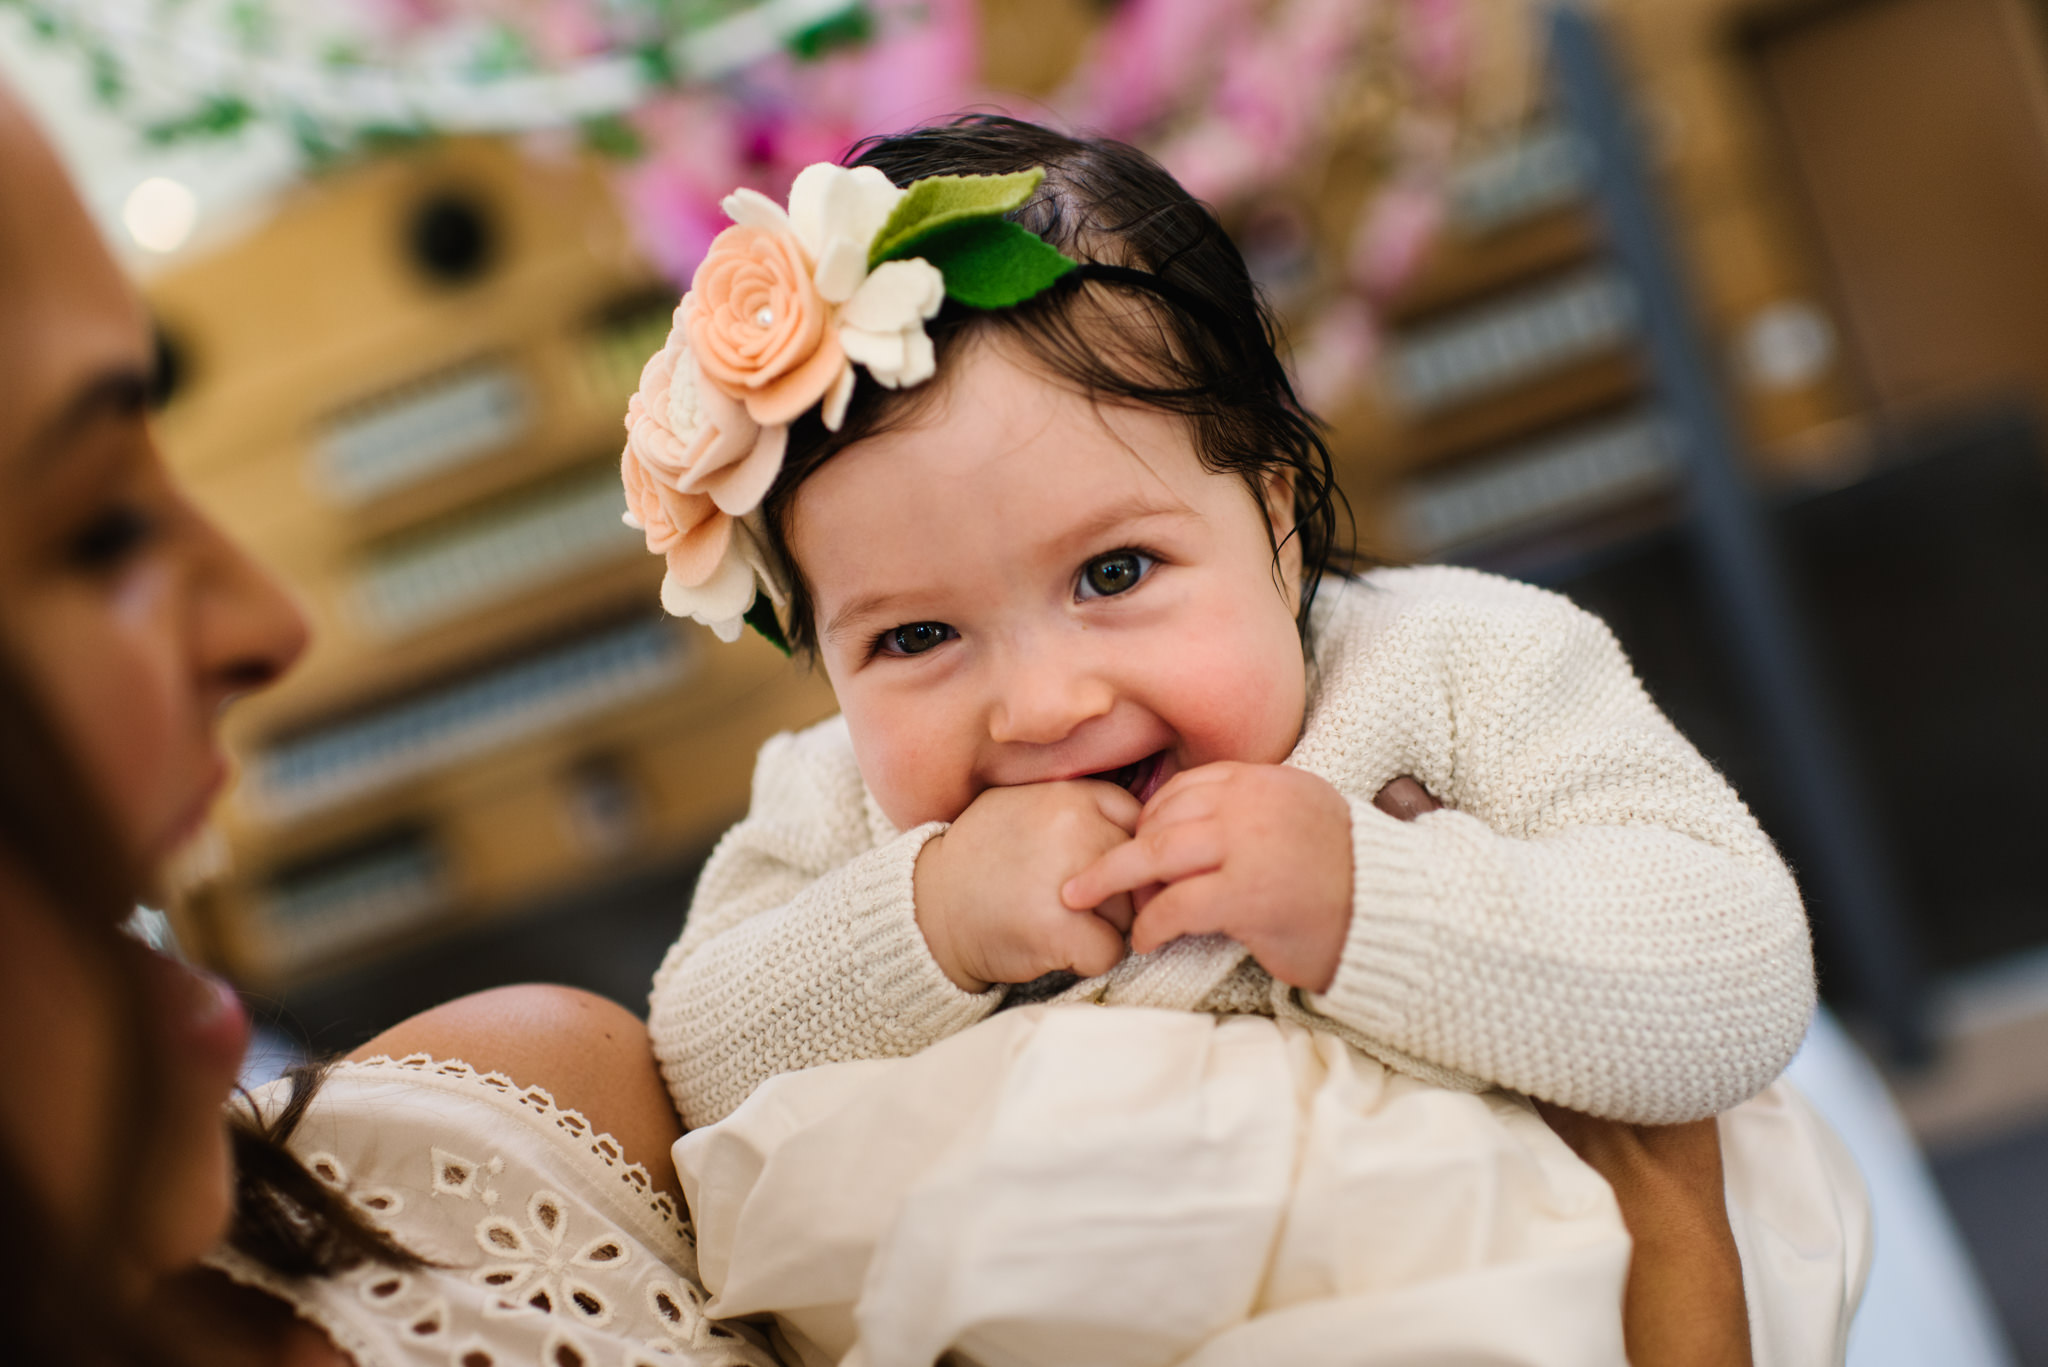 Cute christening photos.jpg